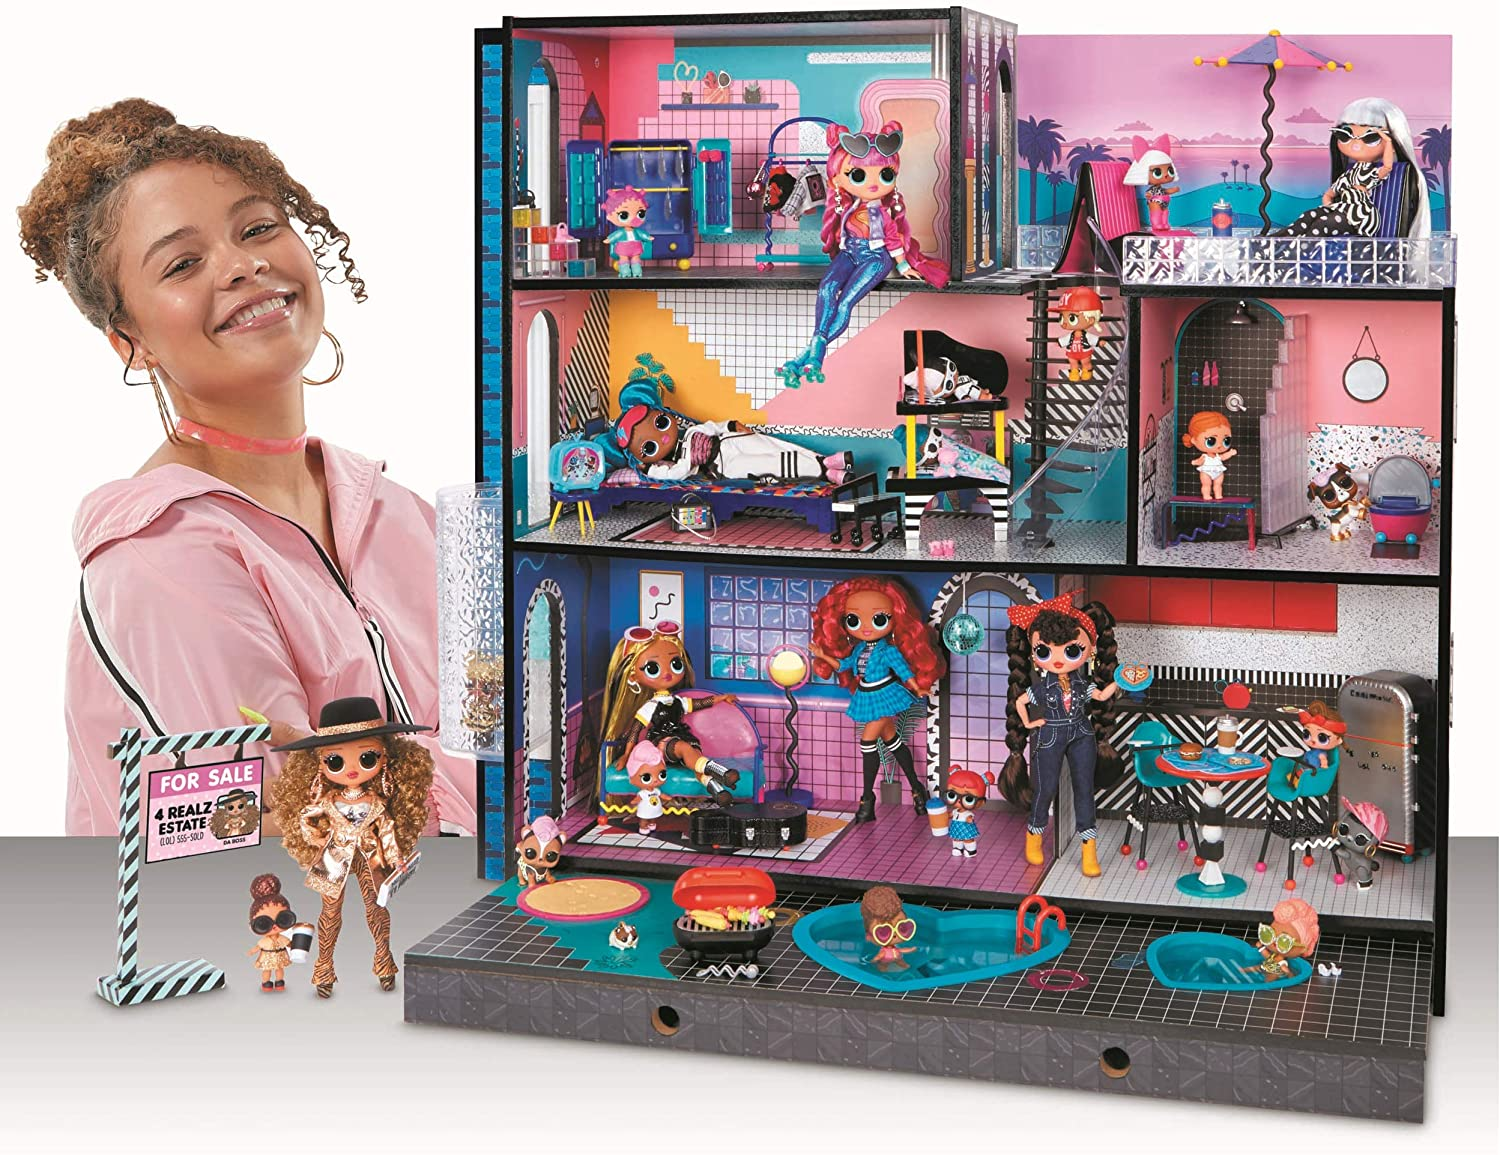 Lol Surprise Omg House 2020 New Real Wood Doll House Youloveit Com